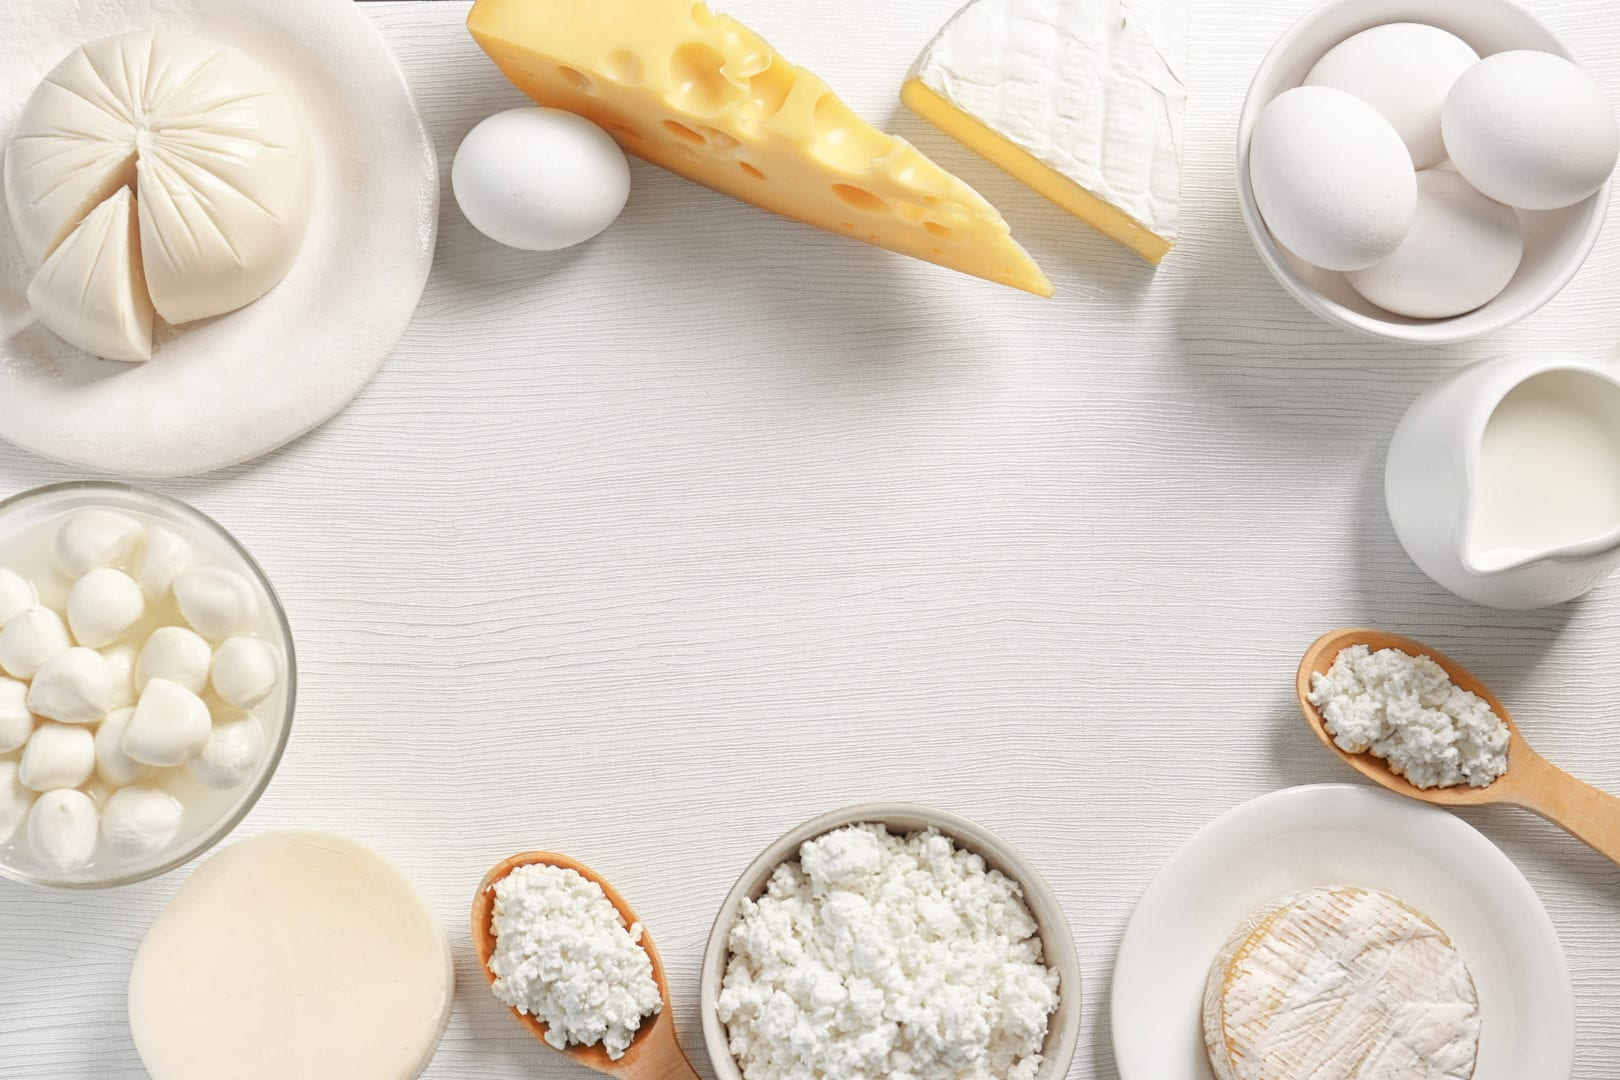 Dairy causes acne | table with cheese and milk